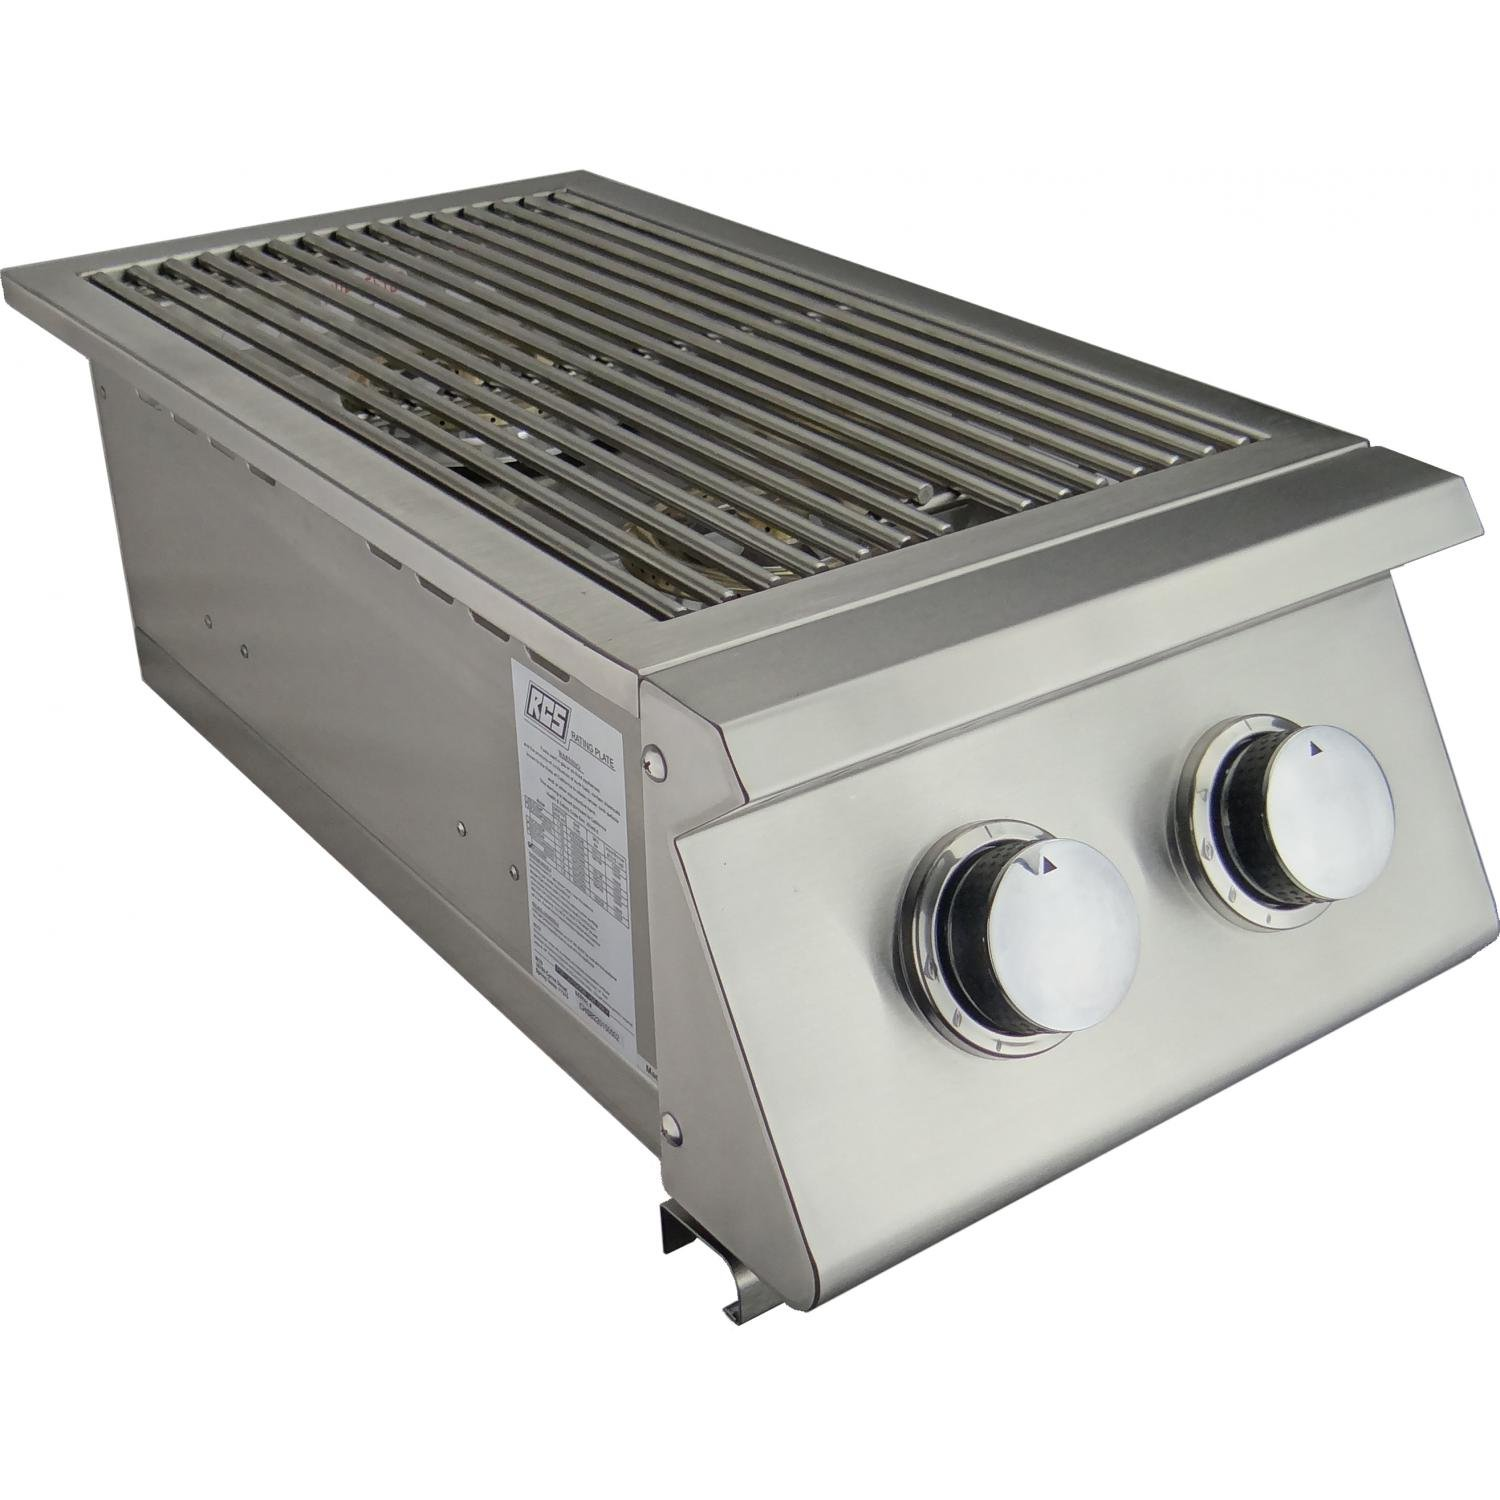 RCS Built-in Propane Gas Stainless Steel Double Side Burner by RCS